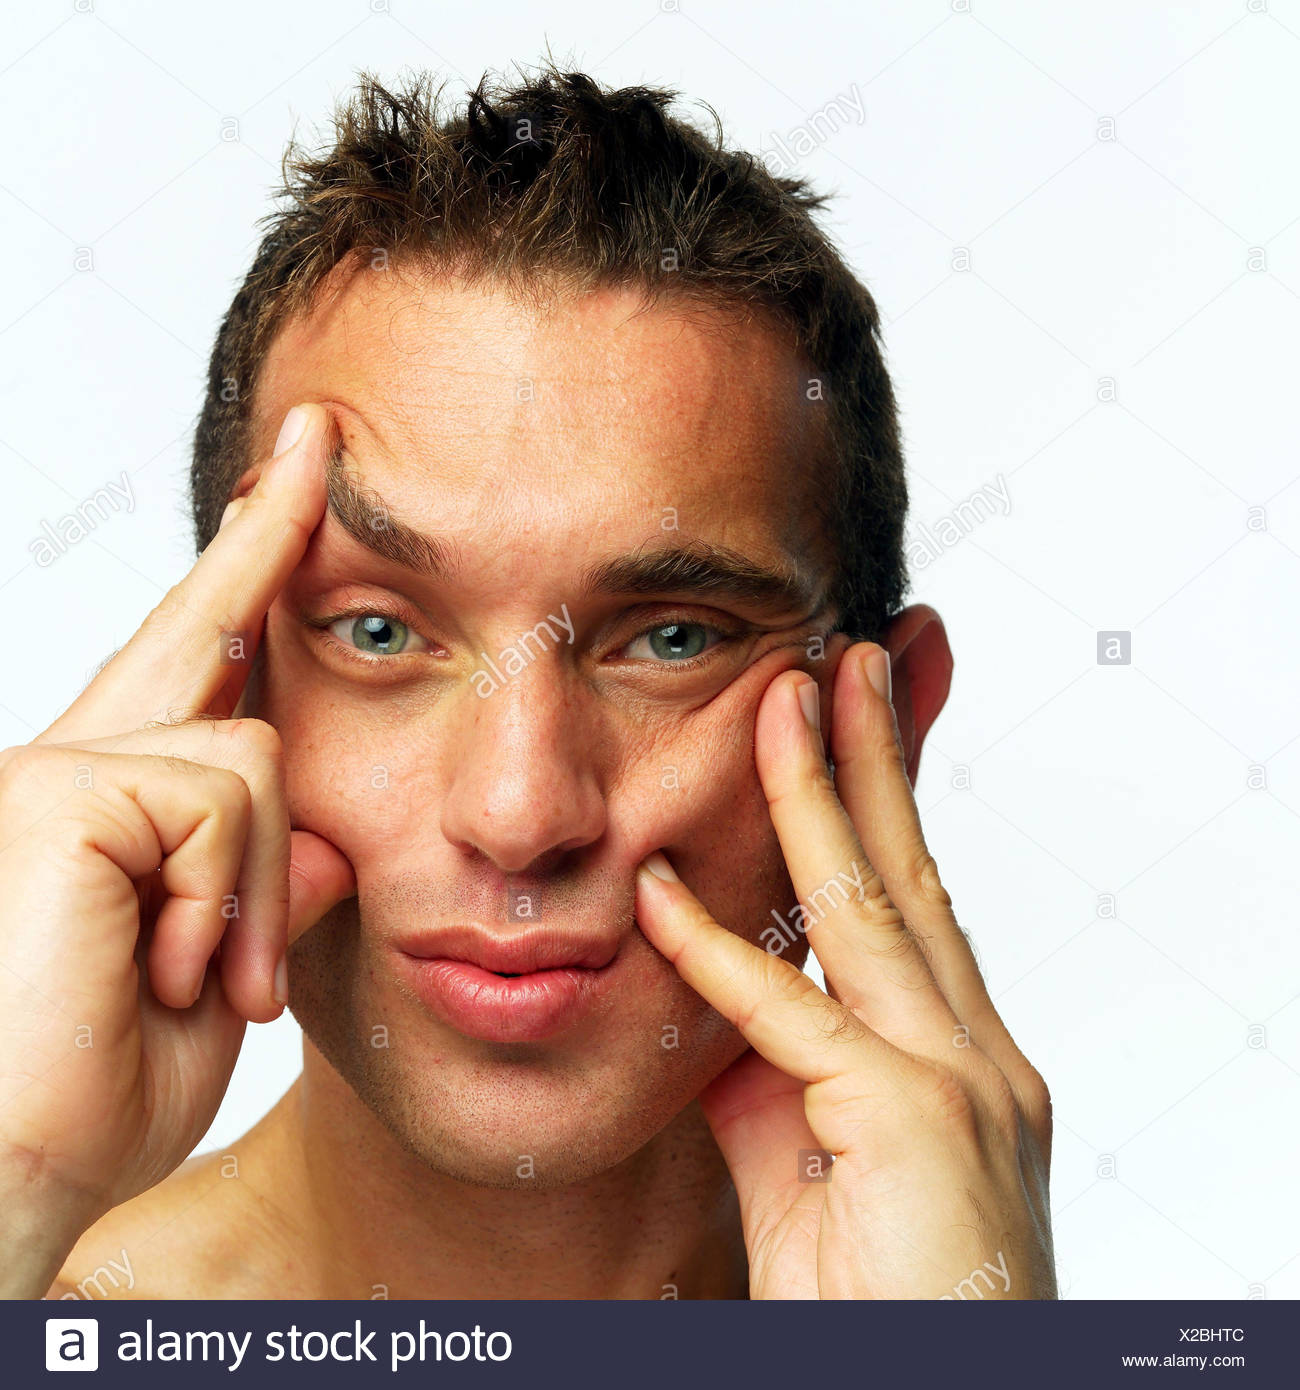 Man, young, gesture, portrait, very close, view camera, dark-haired, short hair hairstyle, hands, look, confuses, confusion, disorientated, disorientation, expression, facial play - Stock Image